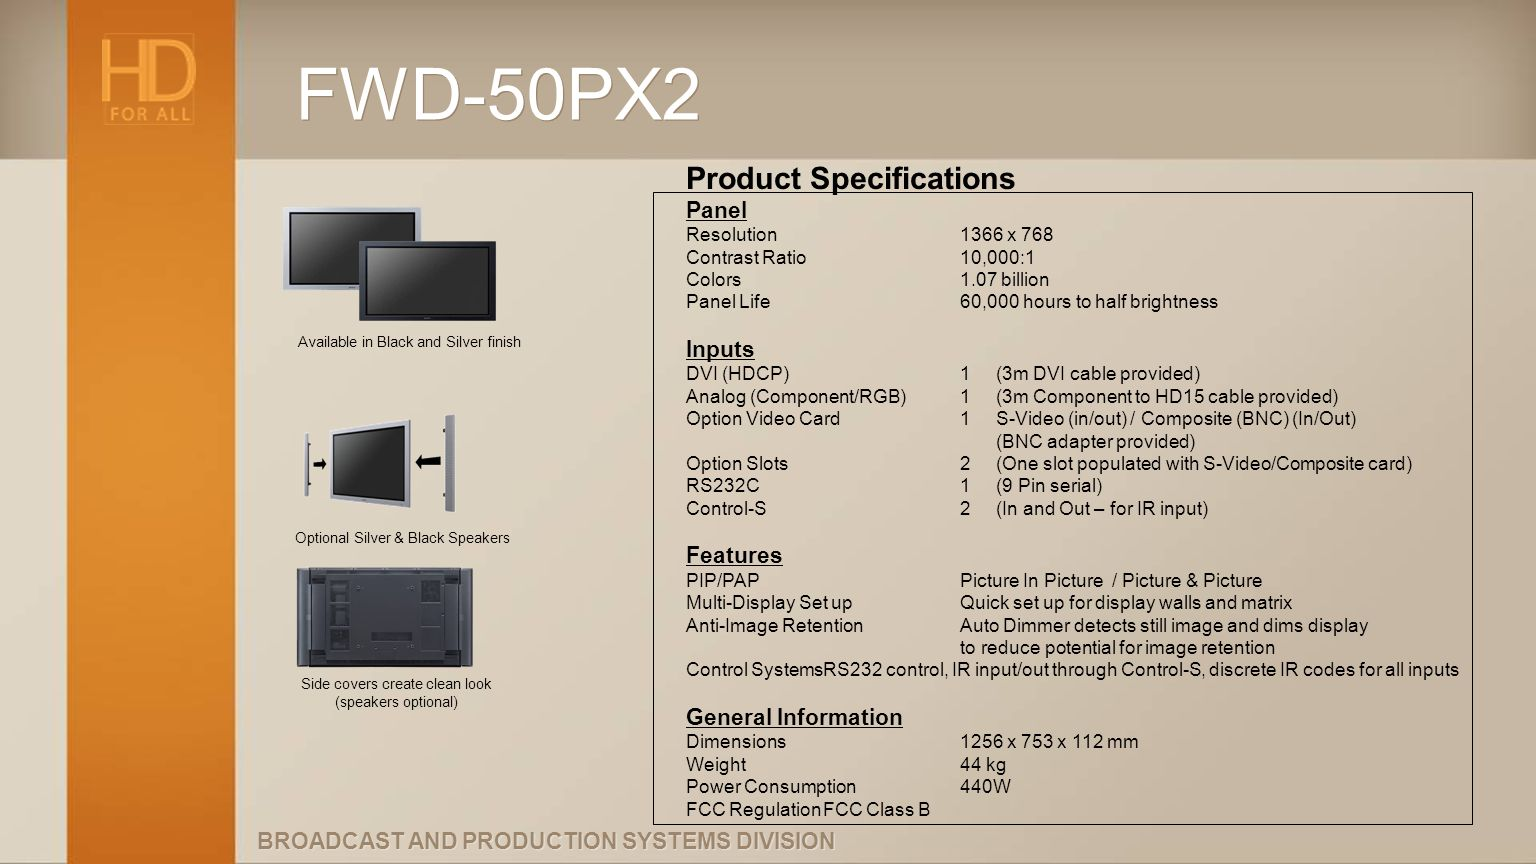 BROADCAST AND PRODUCTION SYSTEMS DIVISION FWD-50PX2 Available in Black and Silver finish Optional Silver & Black Speakers Product Specifications Panel